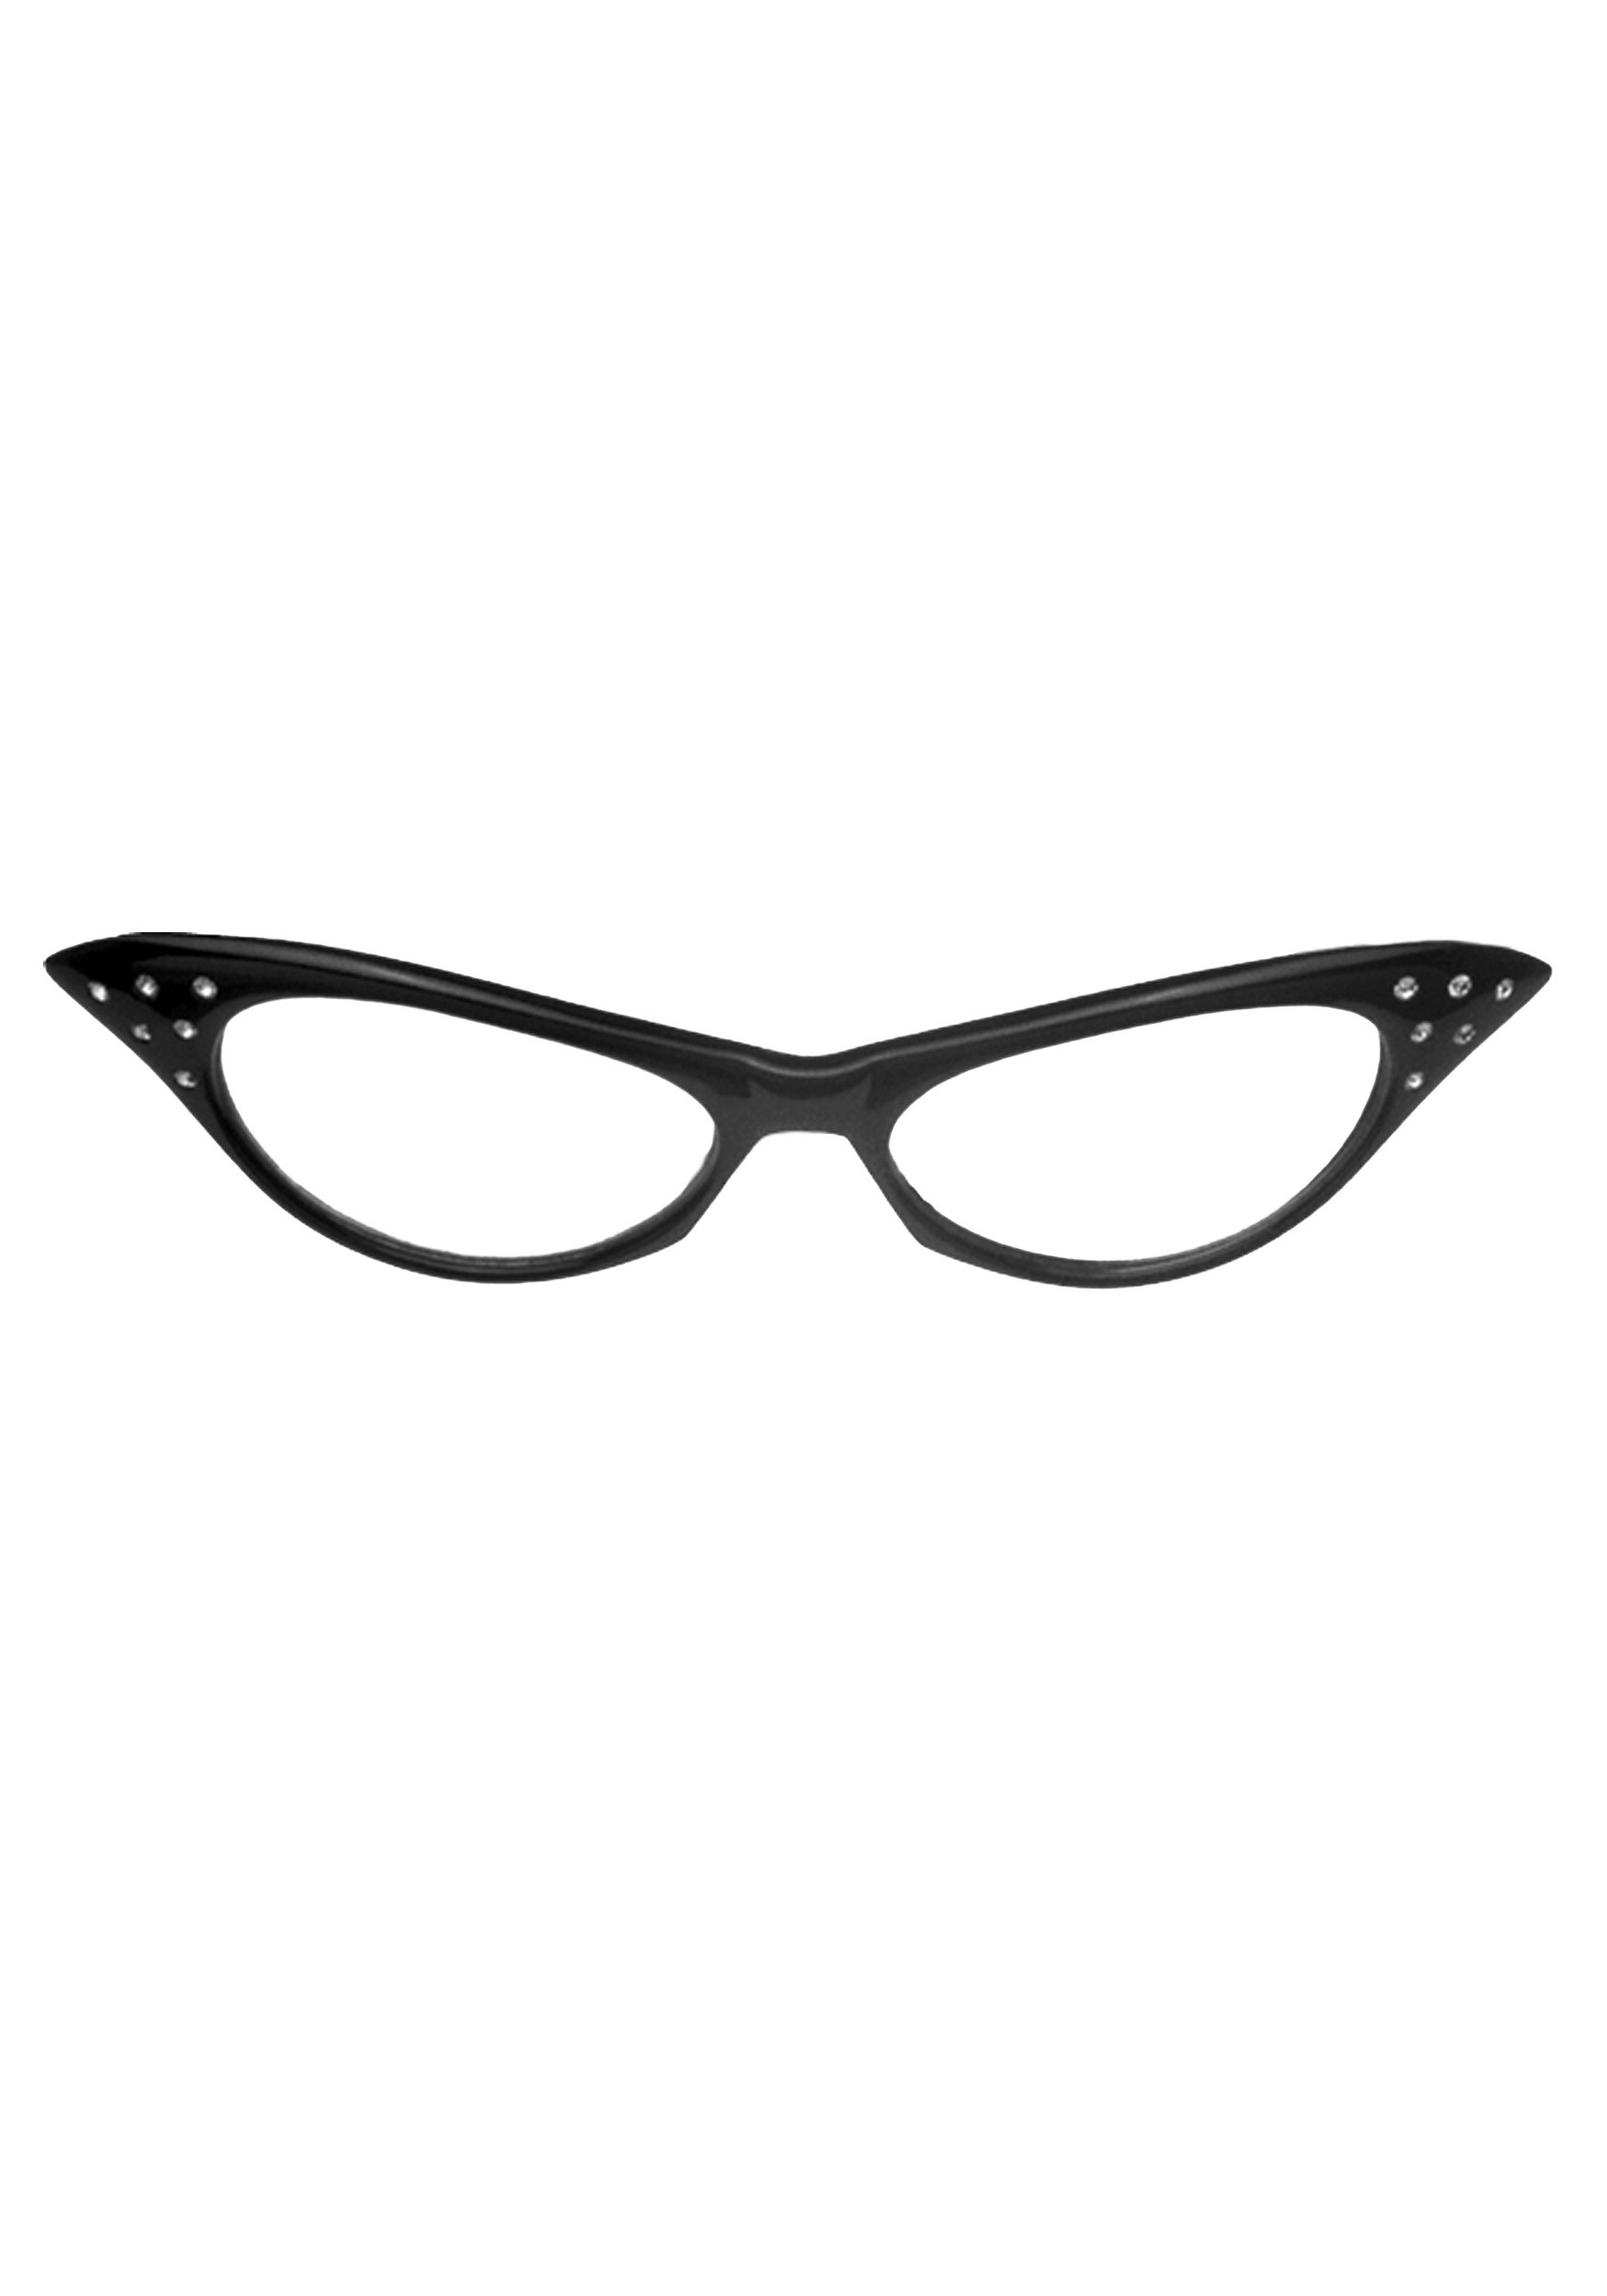 Black Frame Glasses Images : 50s Black Frame Glasses